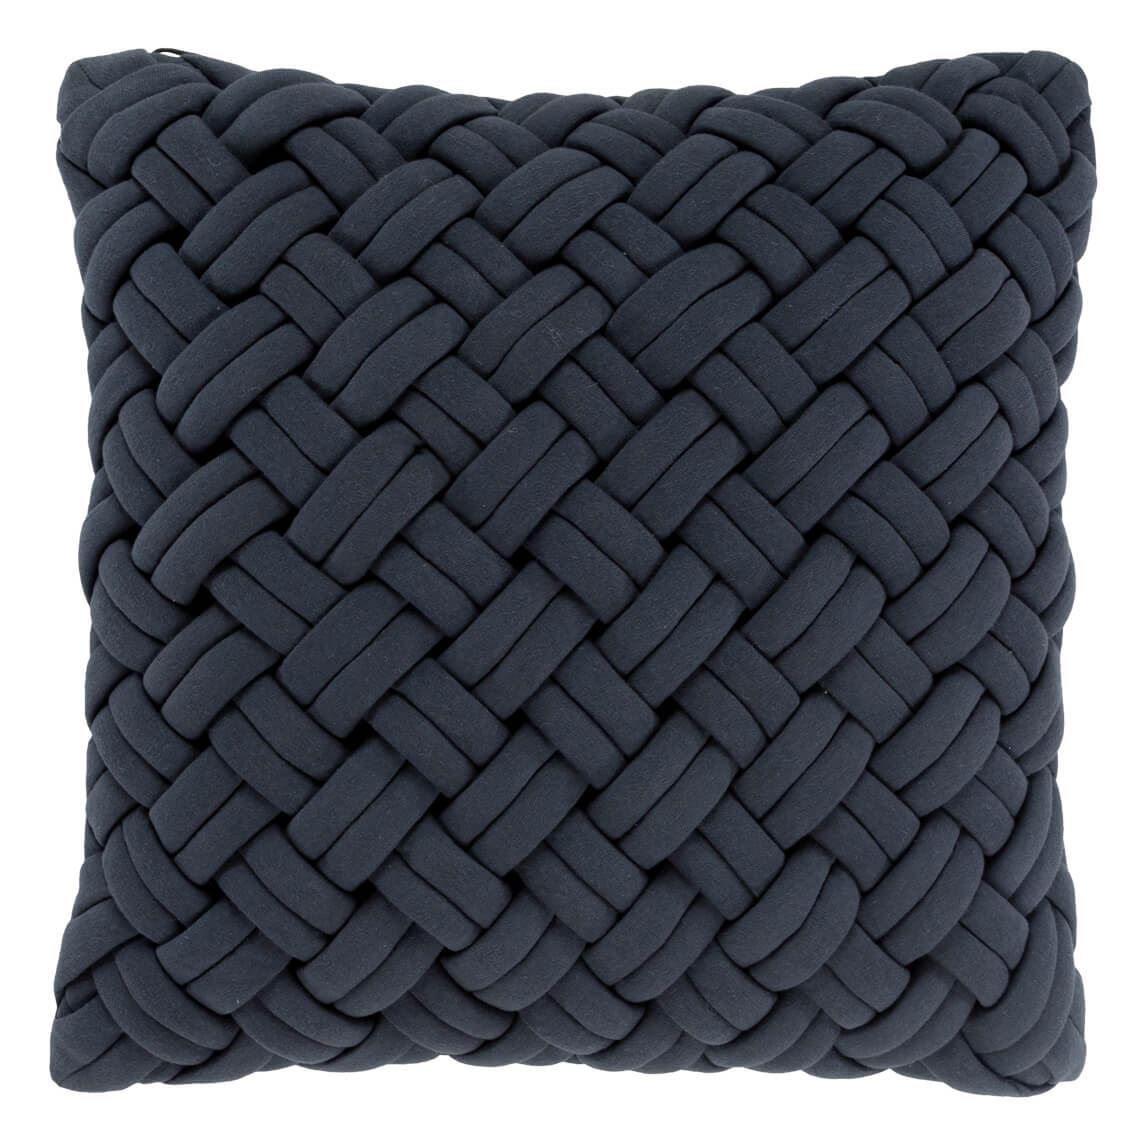 Sharda Cushion Size W 50cm x D 50cm x H 10cm in Grey 64% Cotton 36% Polyester Freedom